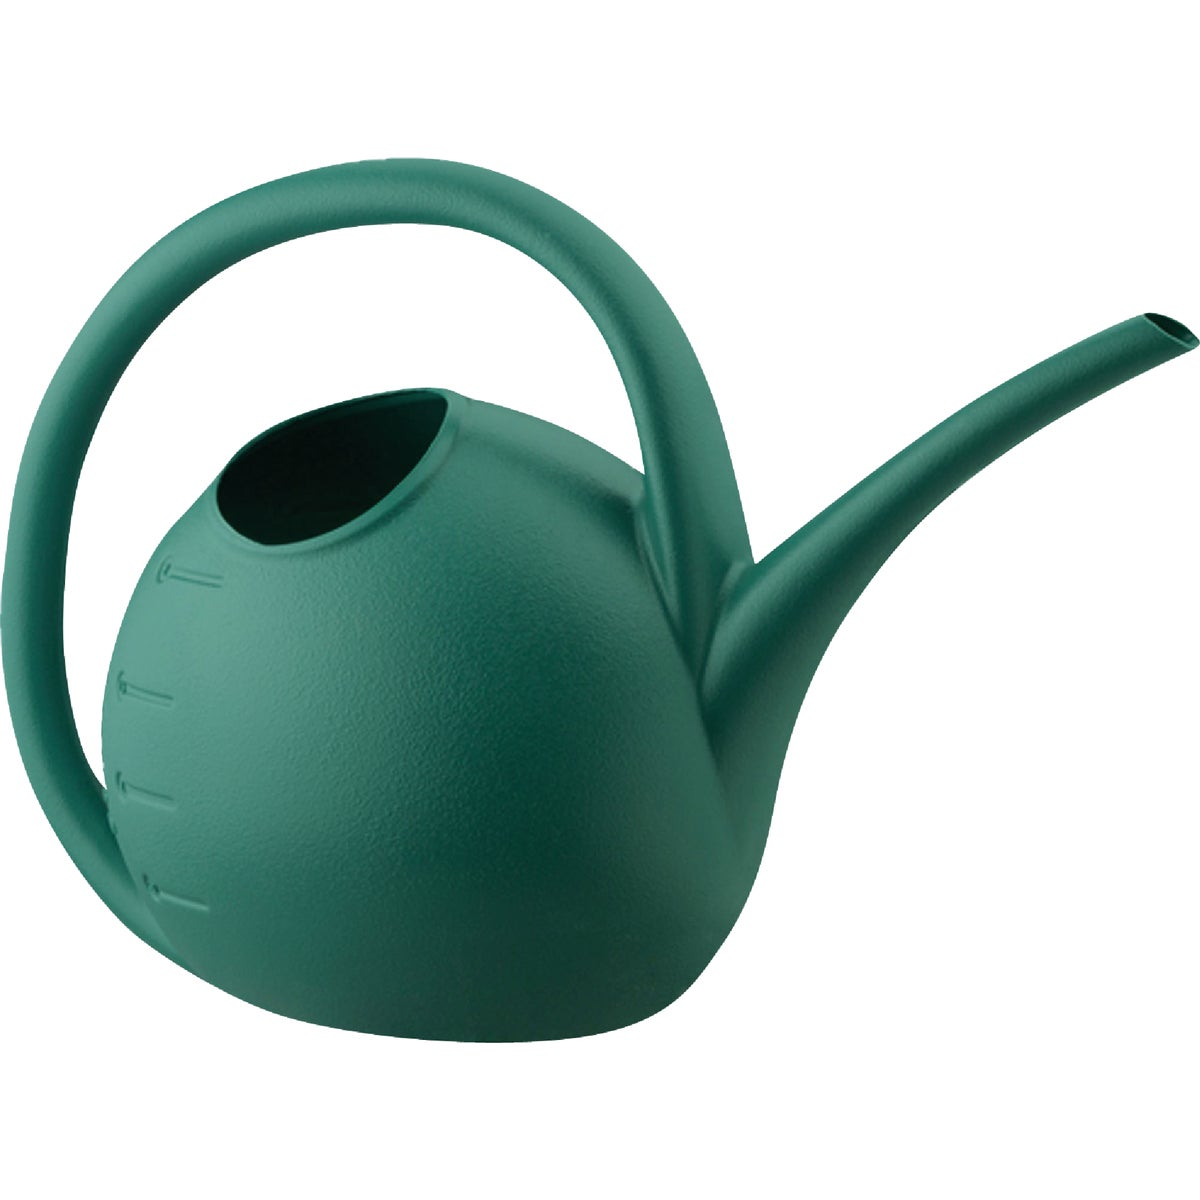 QT GRN POLY WATERING CAN - RZWC1Q0B19 by Myers Industries Inc